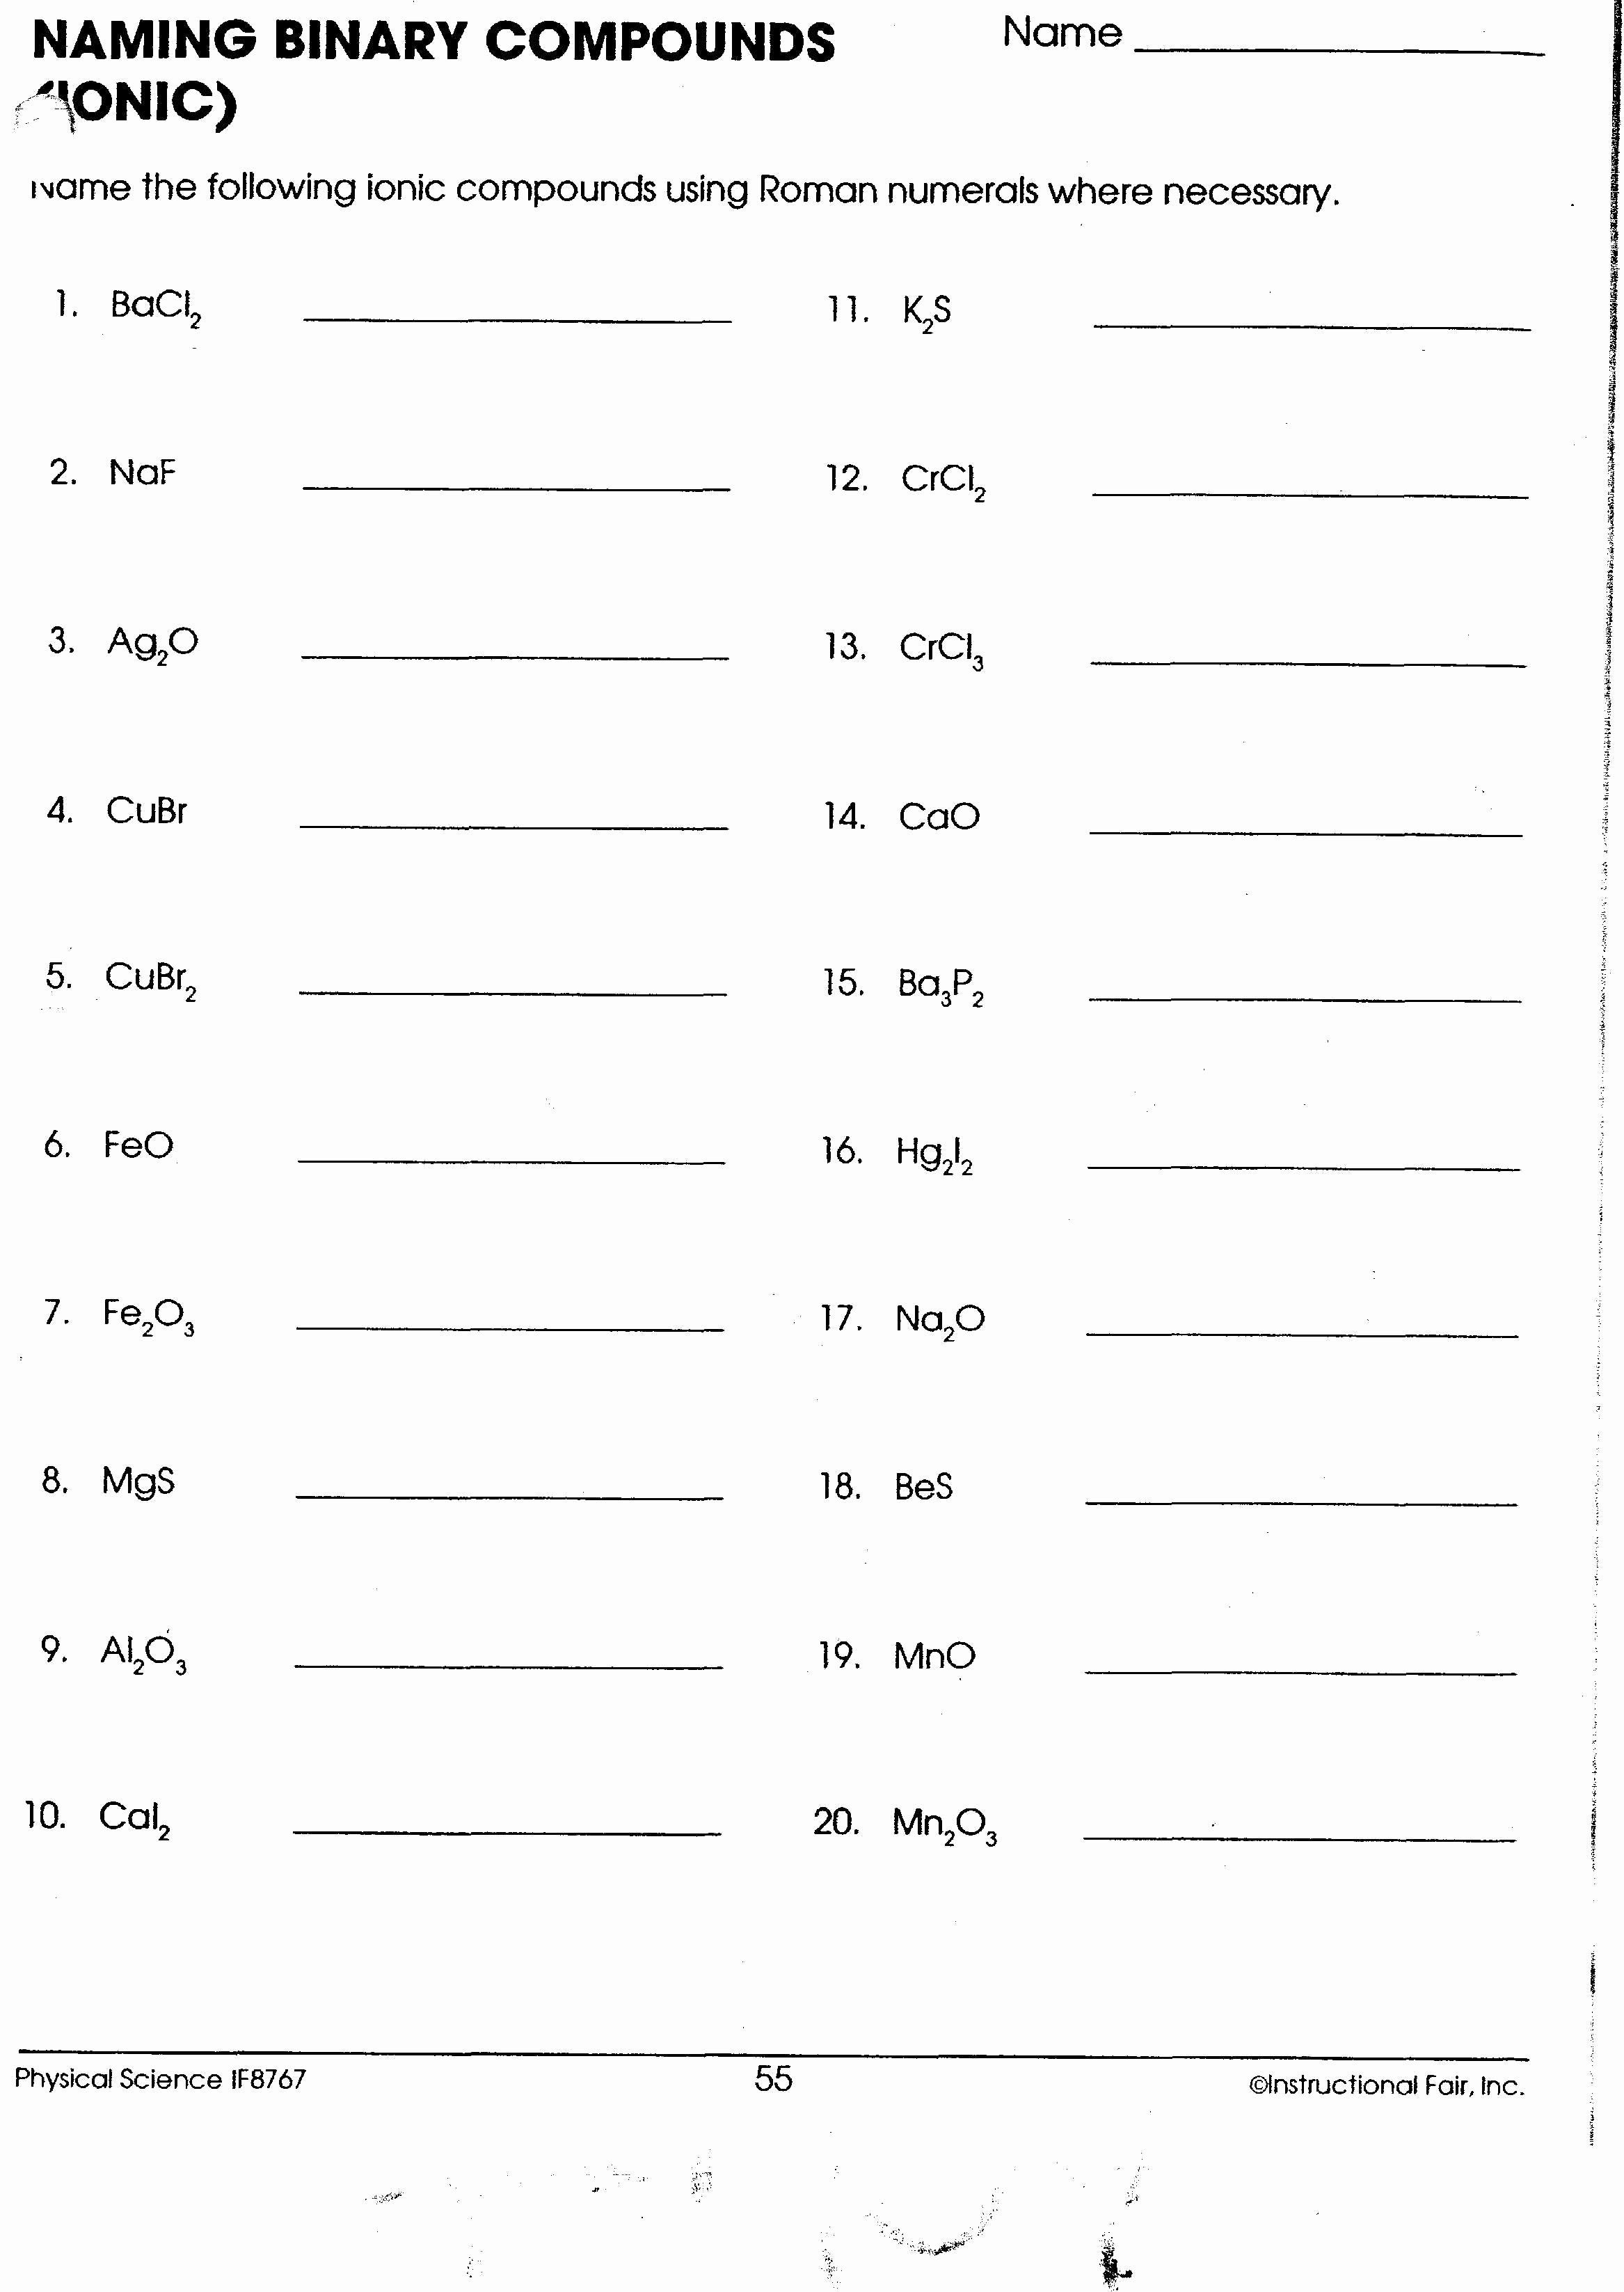 50 Naming Chemical Compounds Worksheet Answers In